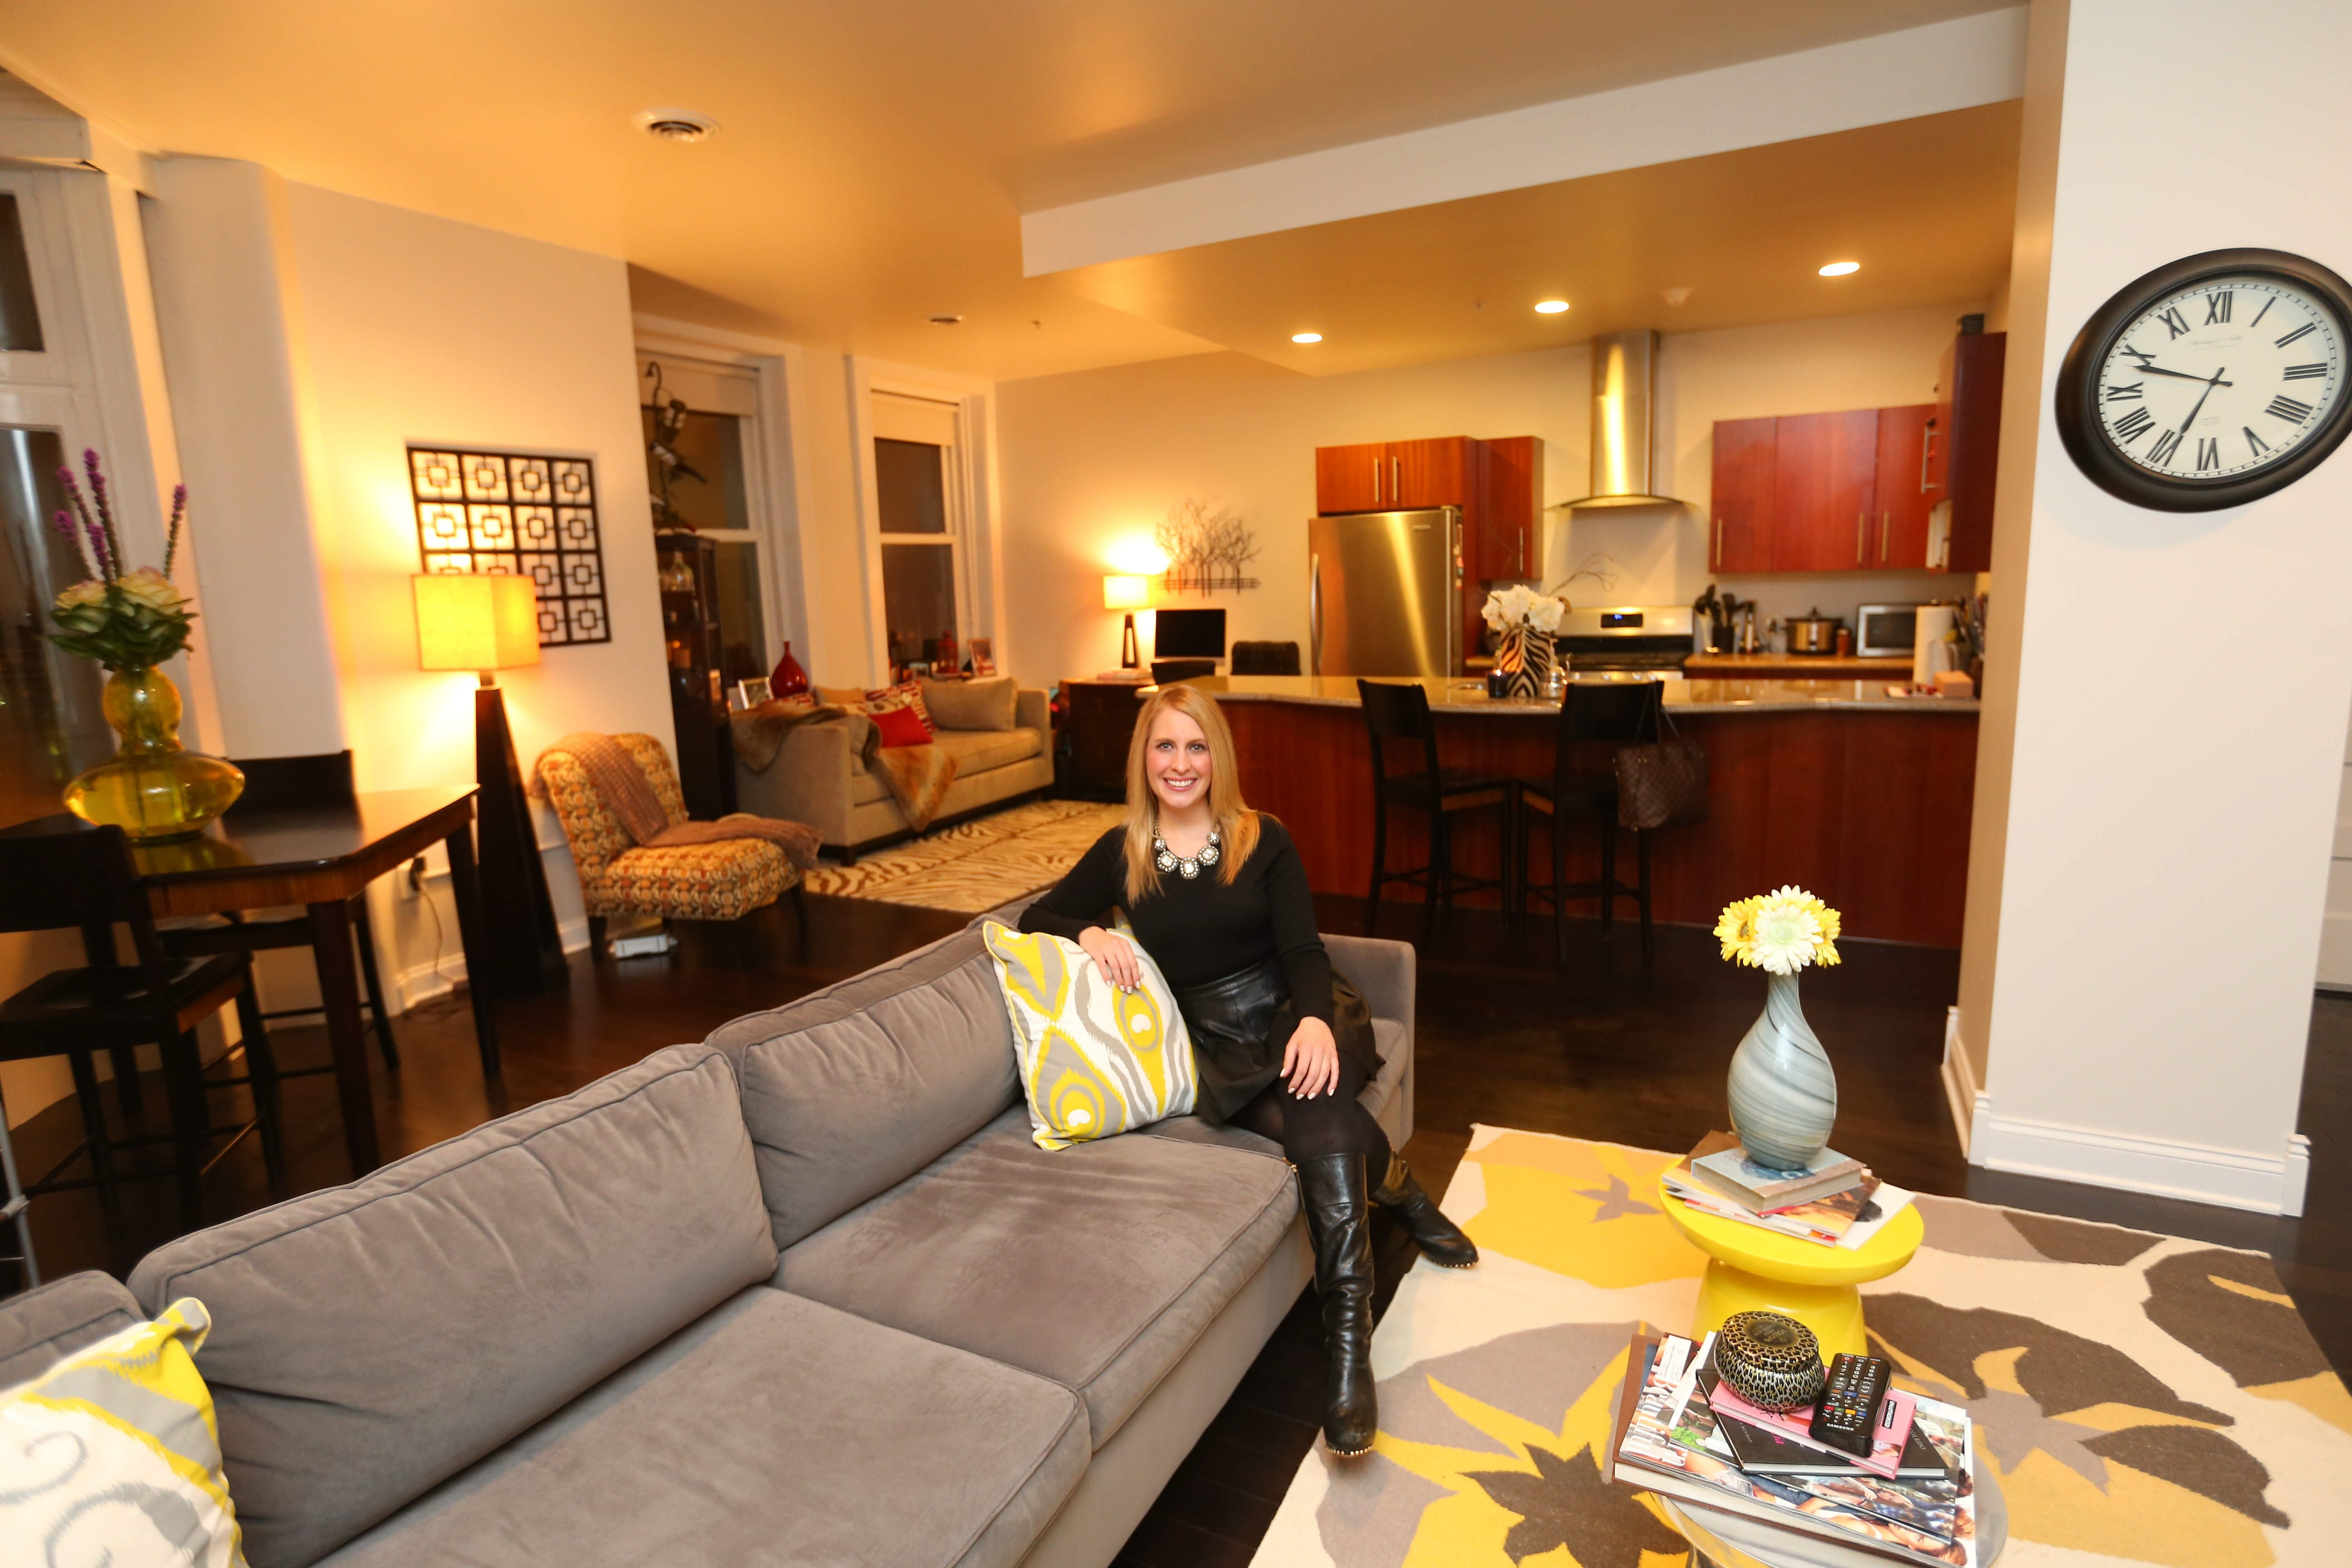 Katherine Hoernig is enjoying life at Apts. at the Lafayette. She previously lived in the Sidway Apartments on Main Street and the Webb Lofts on Pearl Street.